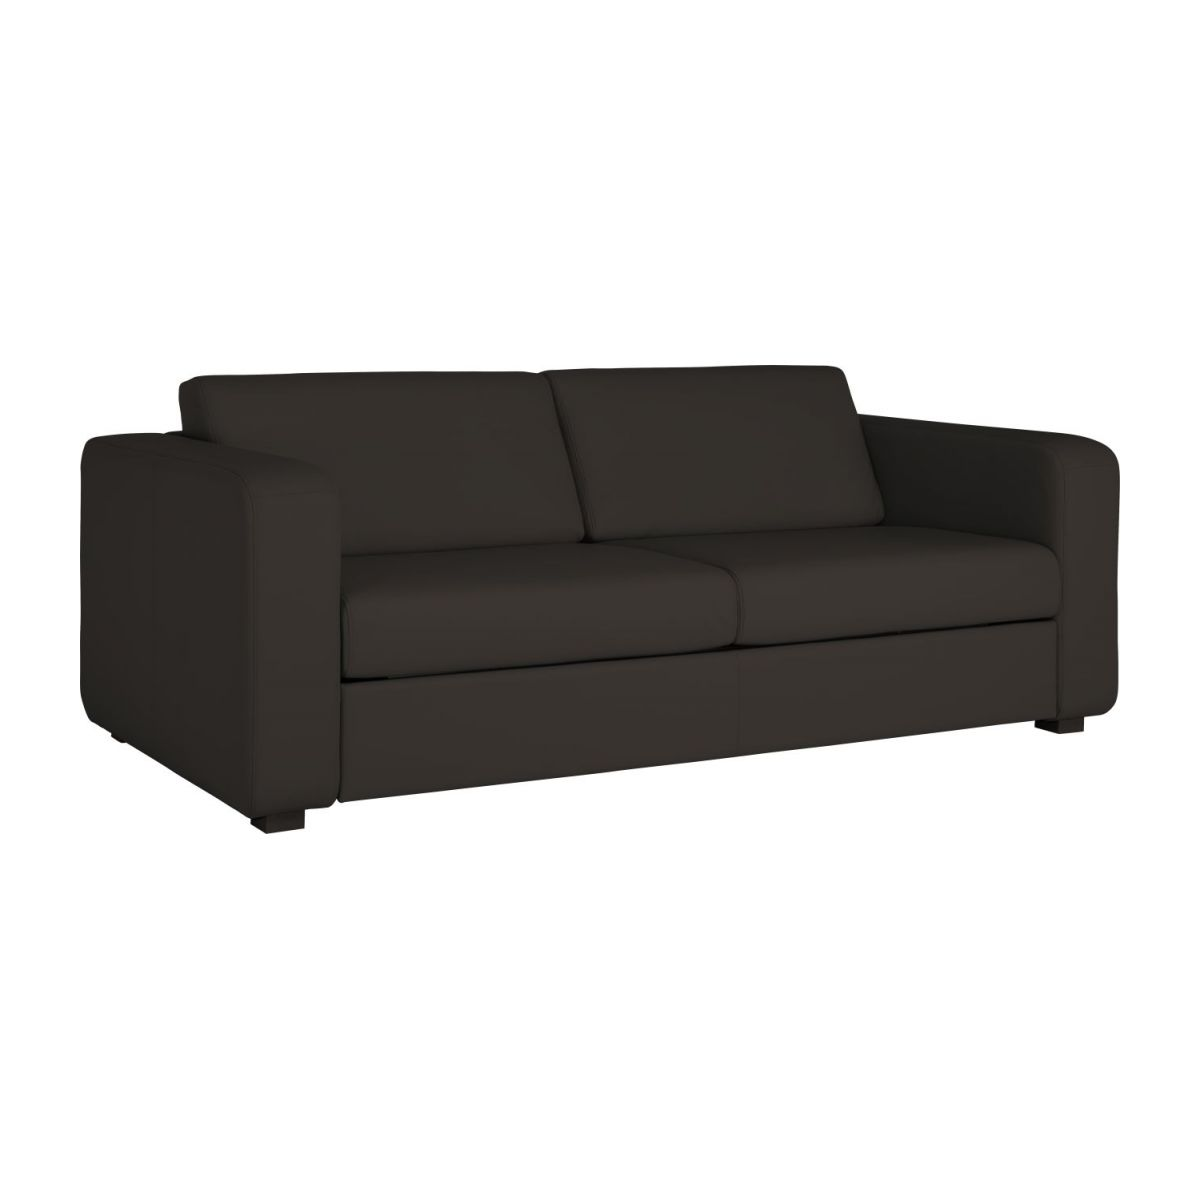 3-person leather sofa n°1